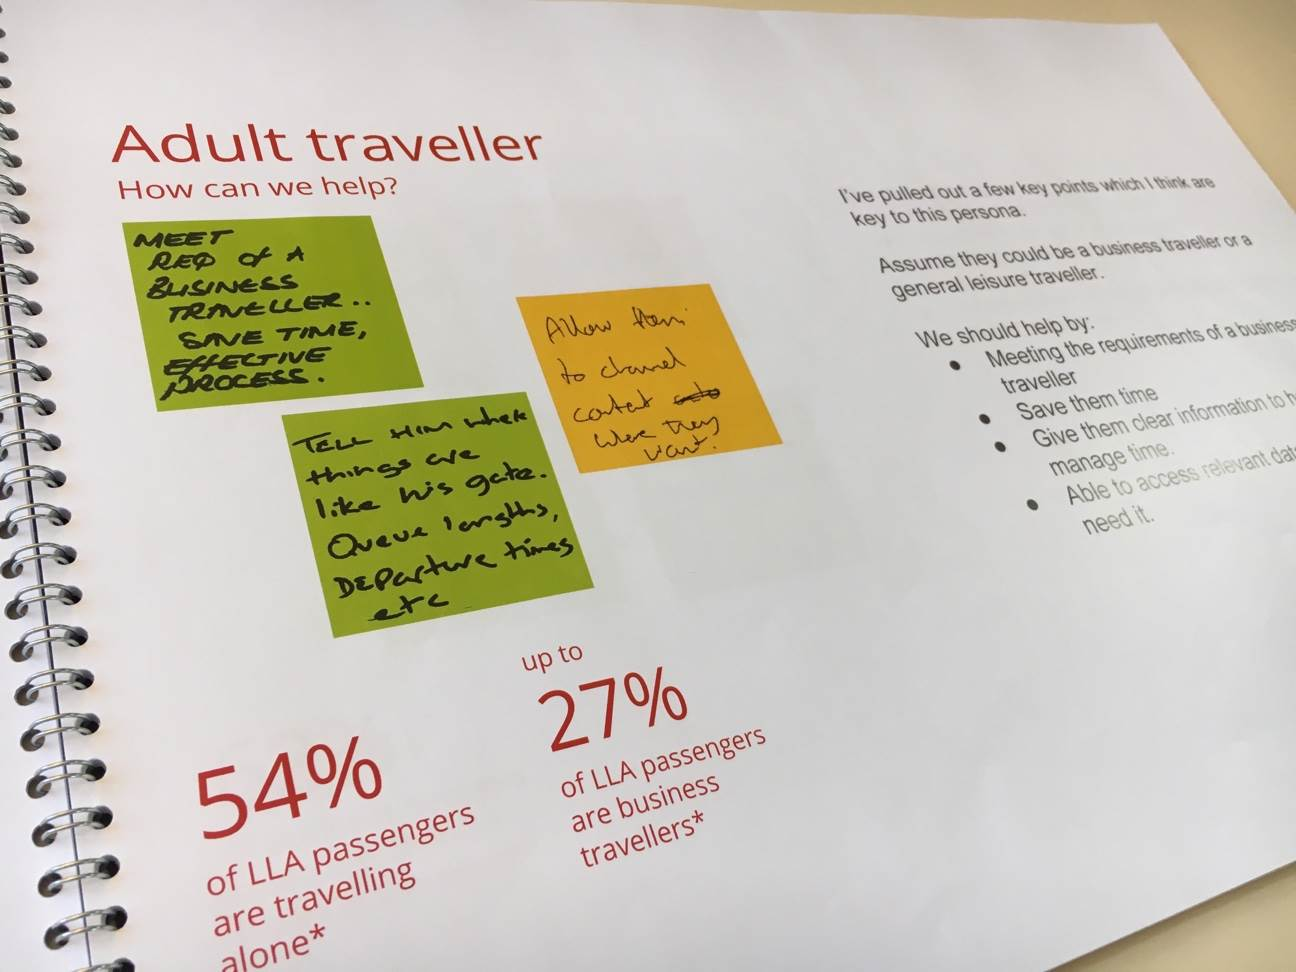 Adult traveller research board